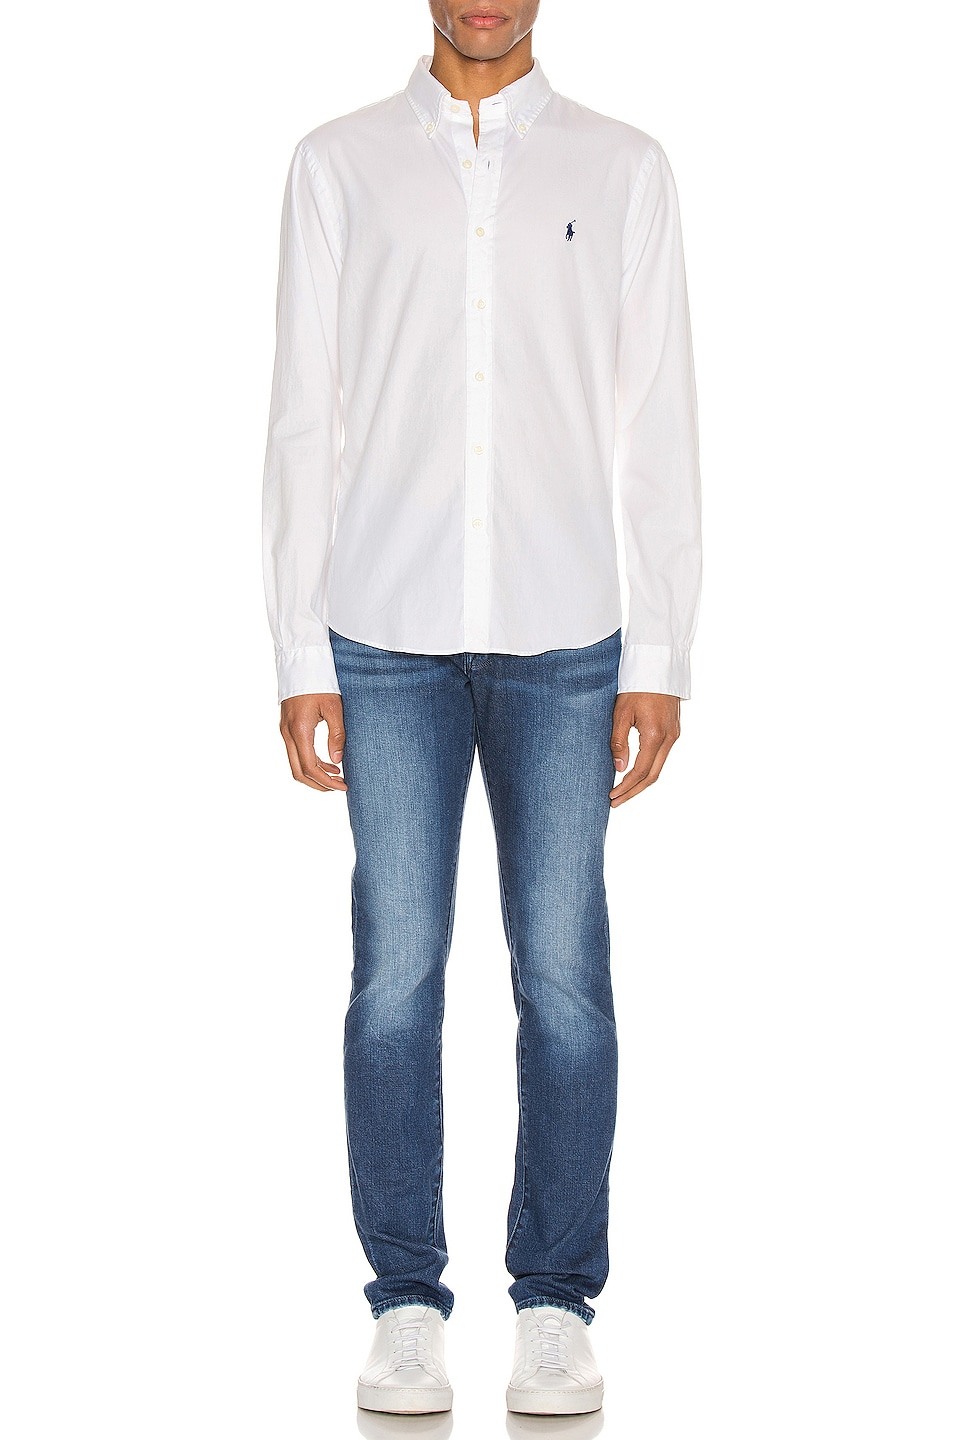 Image 4 of Polo Ralph Lauren GD Chino Long Sleeve Button Up Shirt in White